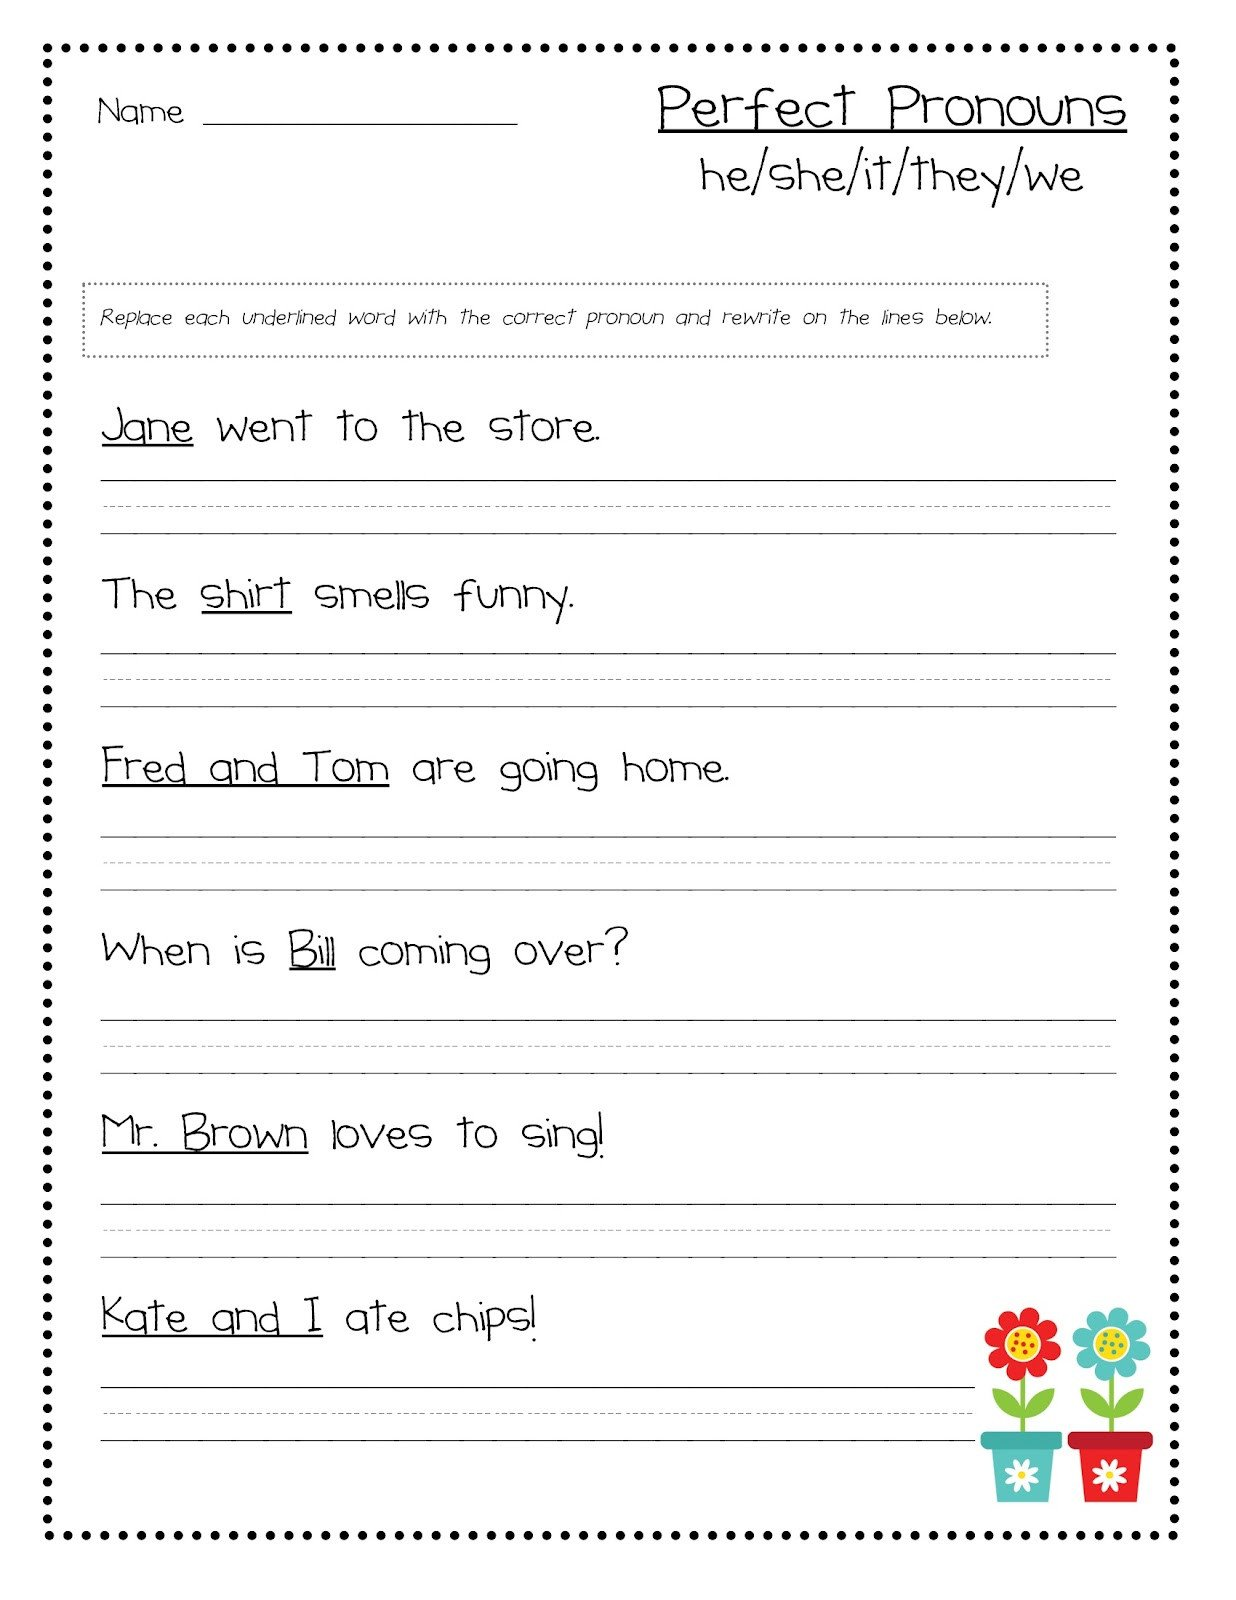 Pronoun Worksheet for 2nd Grade they Pronoun Worksheet